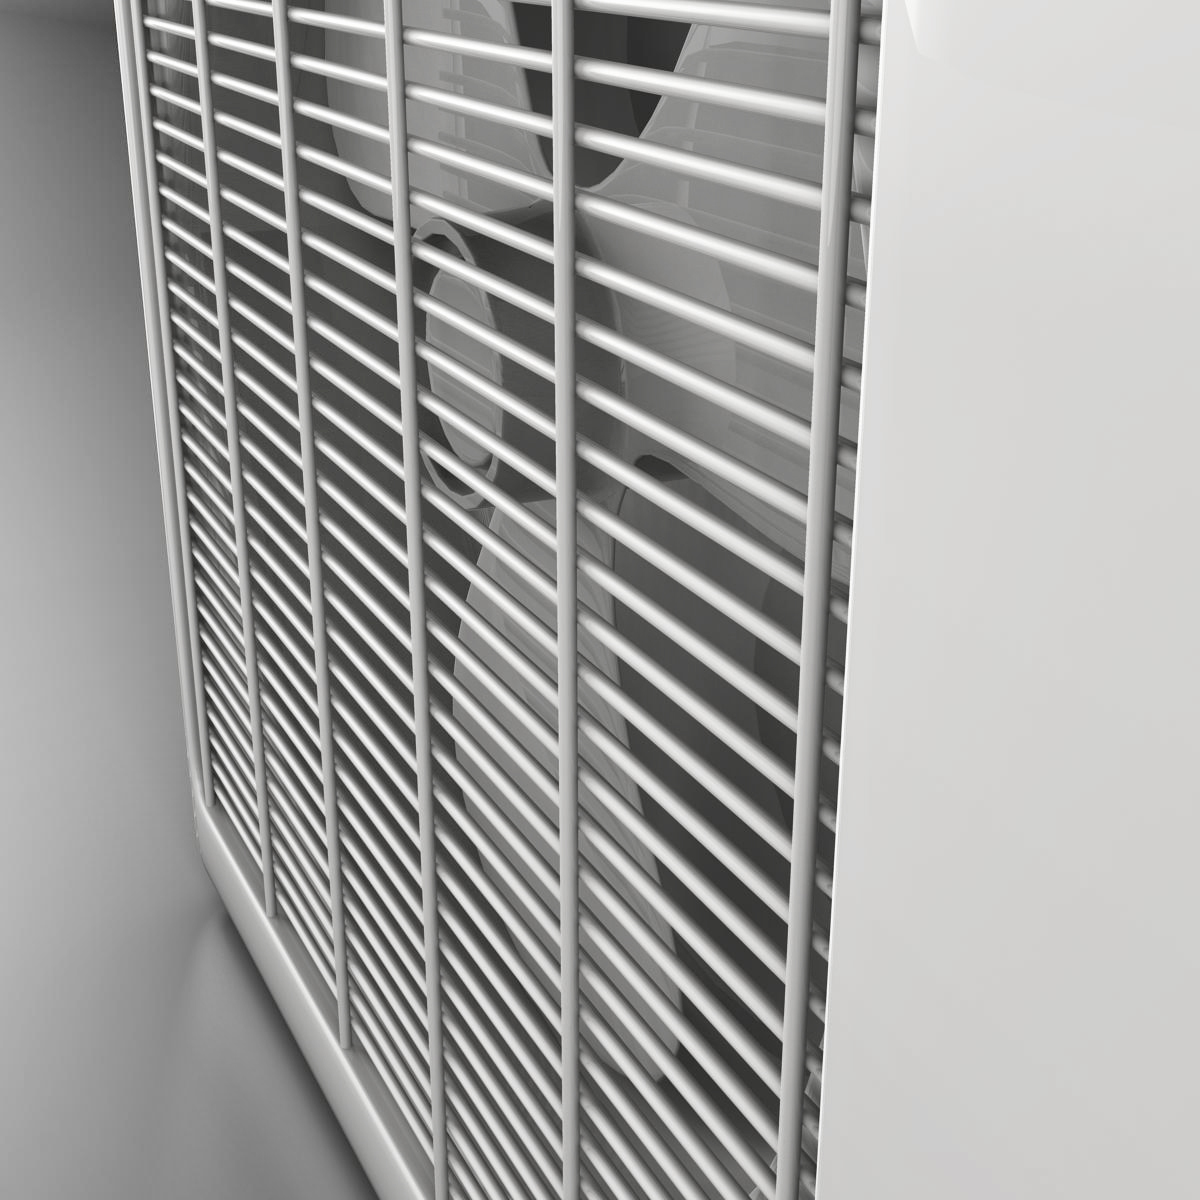 air conditioning 3d model 3ds max fbx c4d ma mb obj 159472